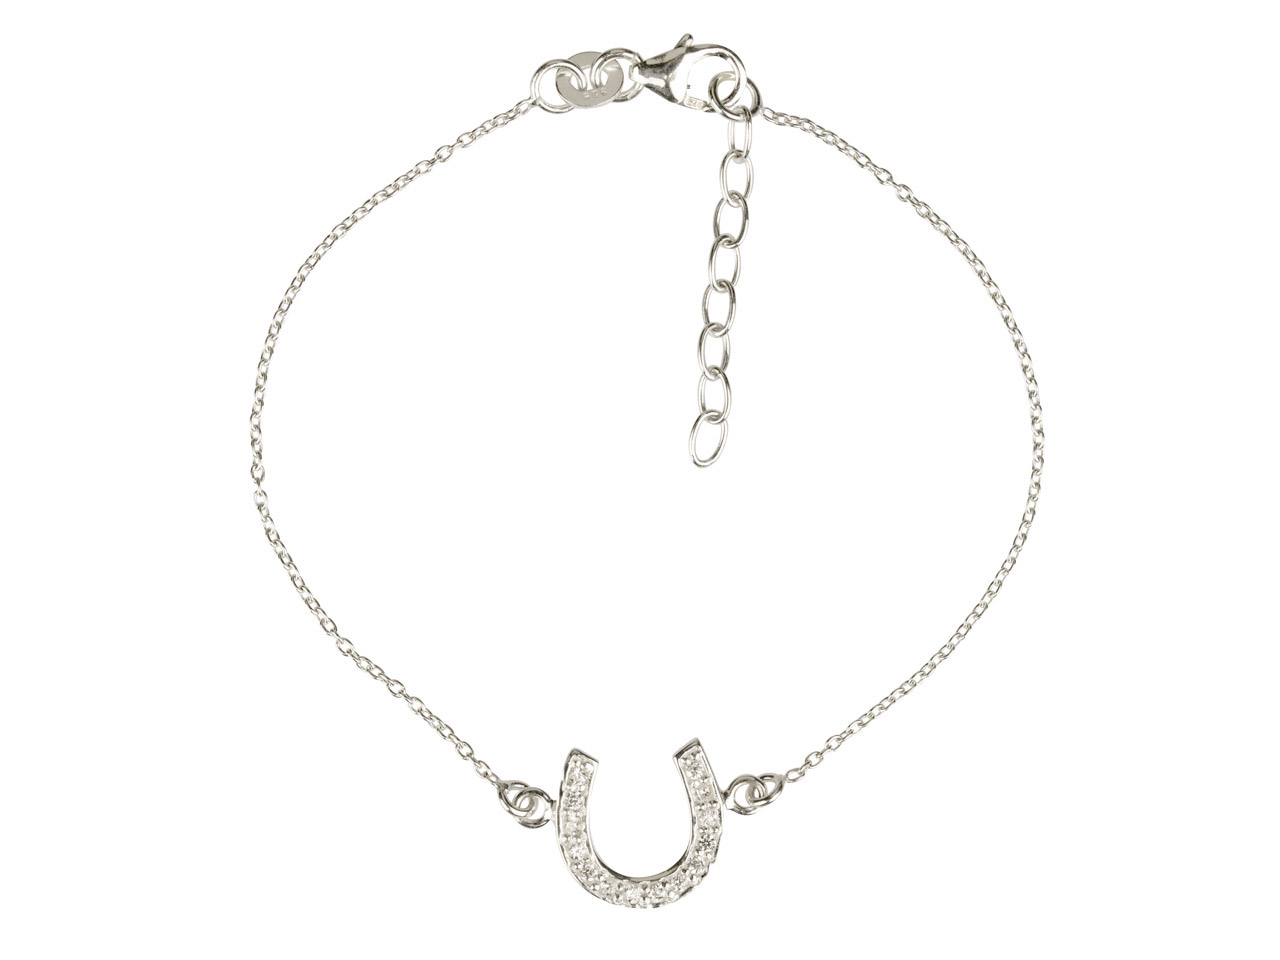 Sterling Silver Bracelet With      Cubic Zirconia Set Horseshoe       Locator, 7.5